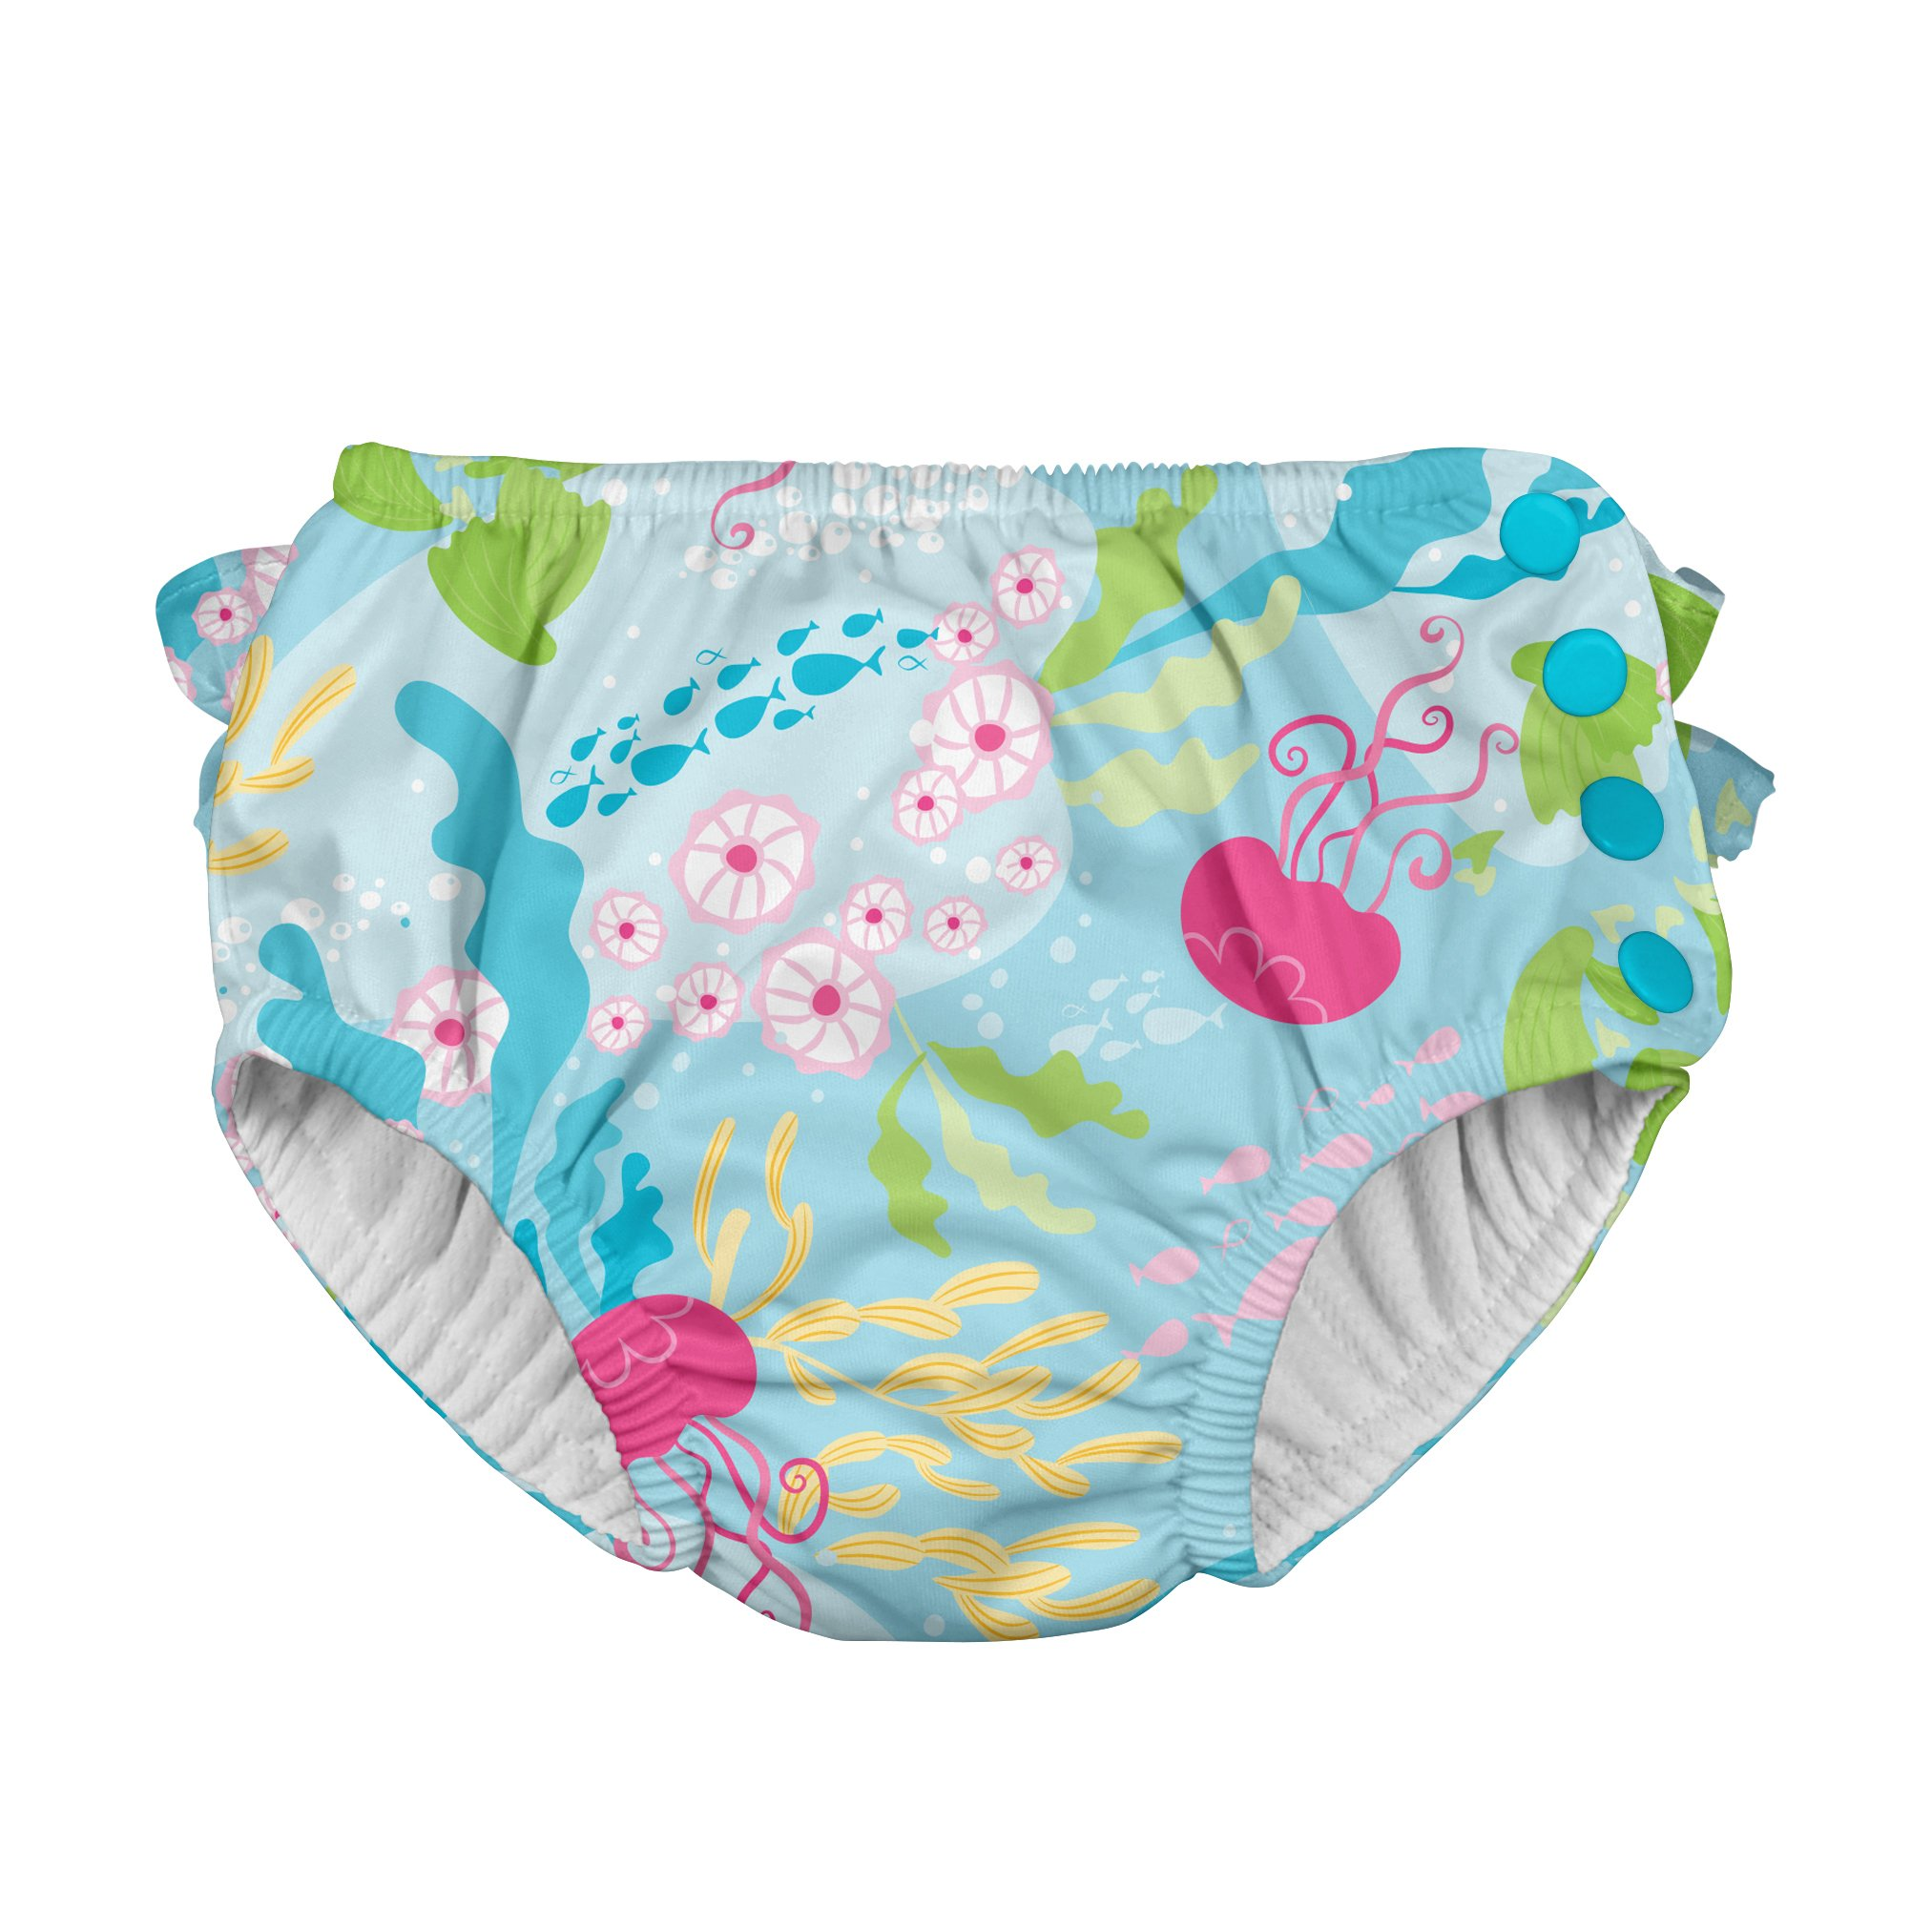 i play. Toddler Girls' Ruffle Snap Reusable Absorbent Swim Diaper, Aqua Coral Reef, 3T